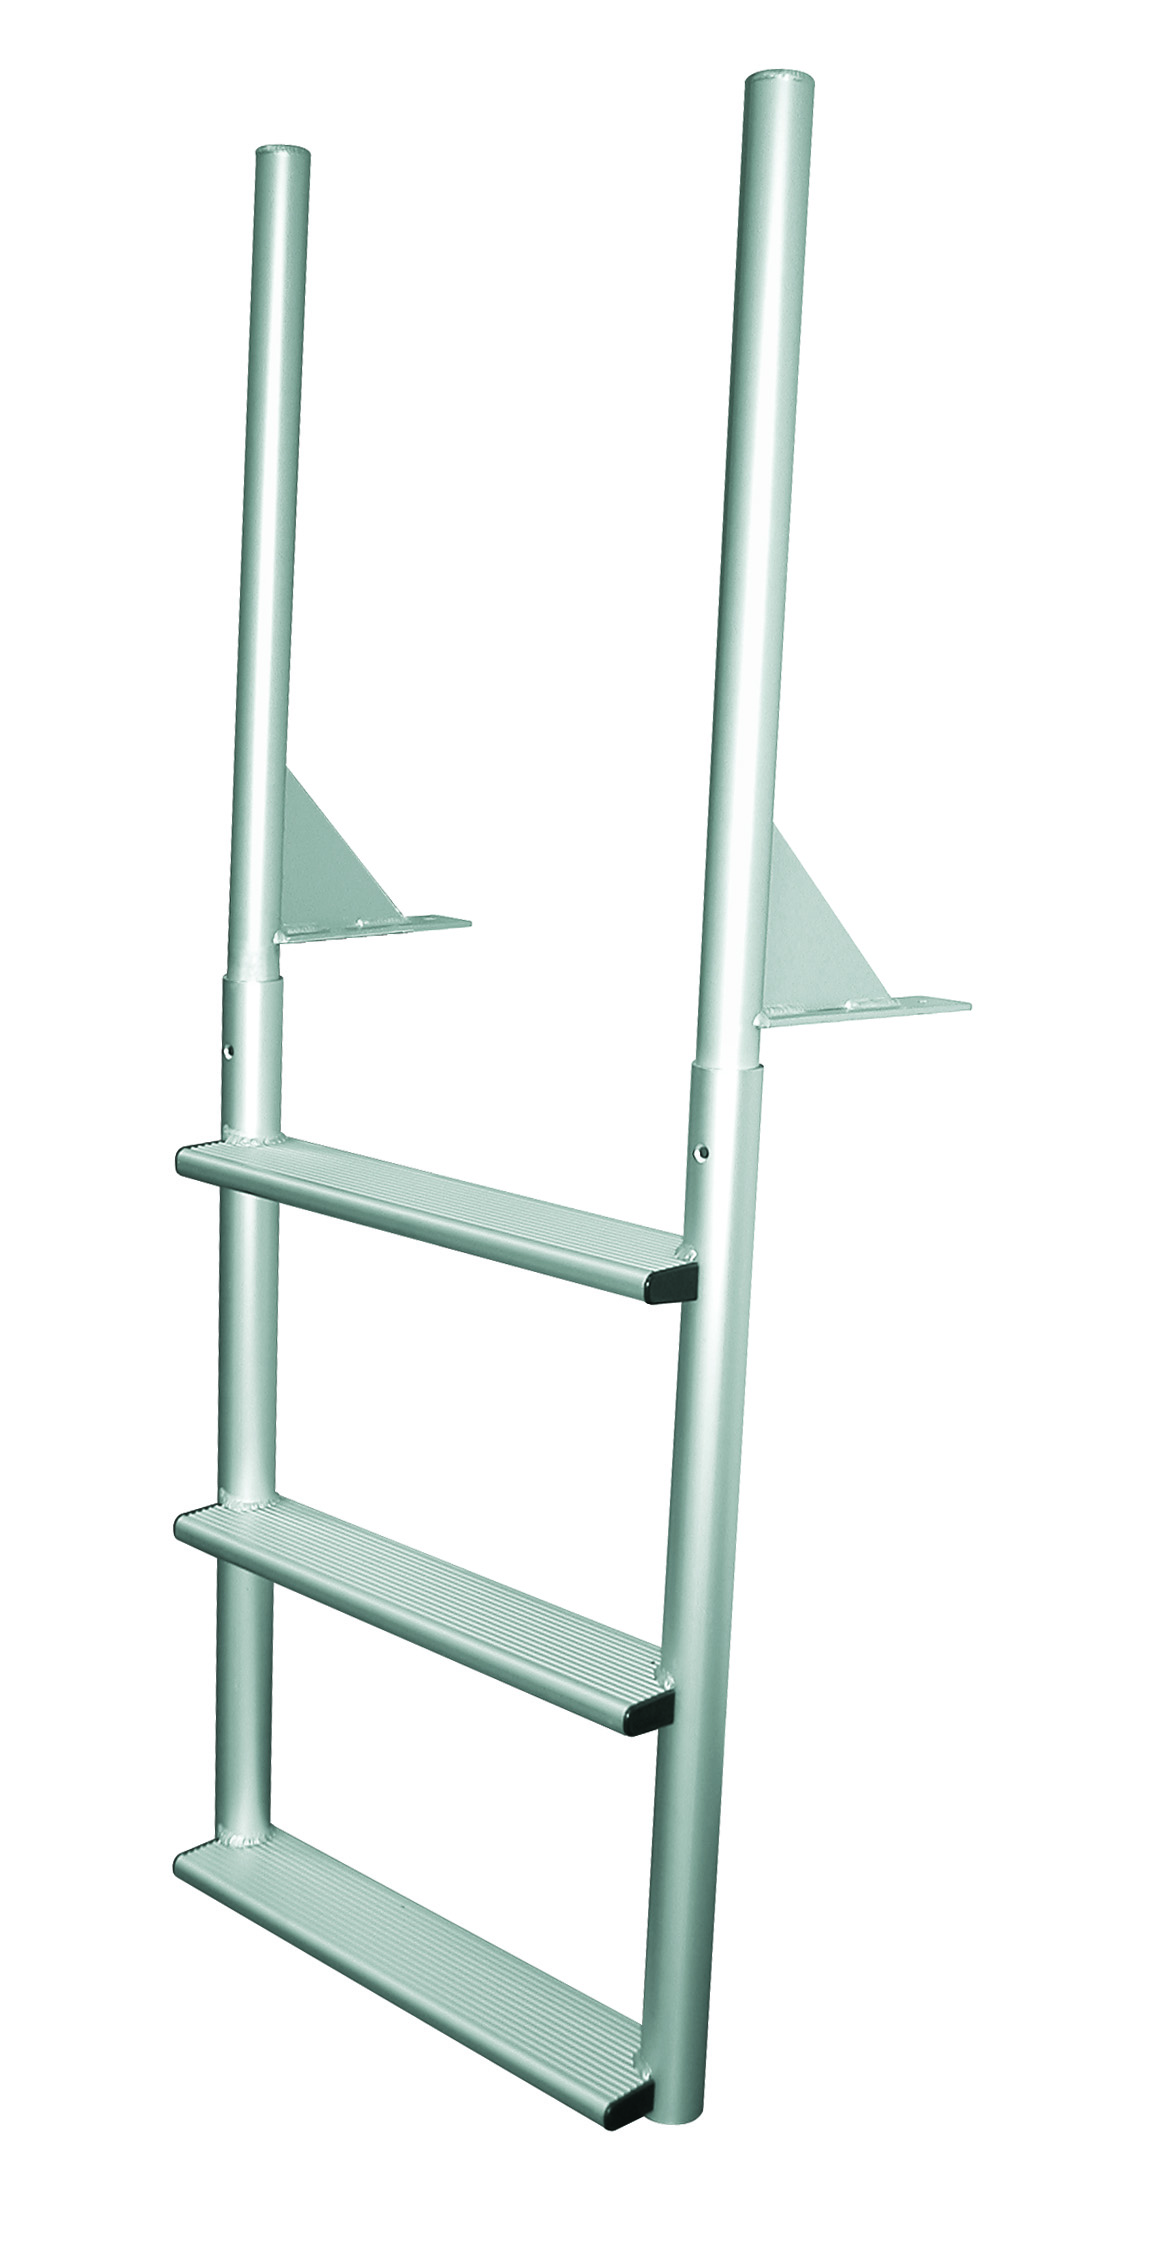 Jif Marine Finger Pier Dock Ladder 3 7 Steps With 2 4